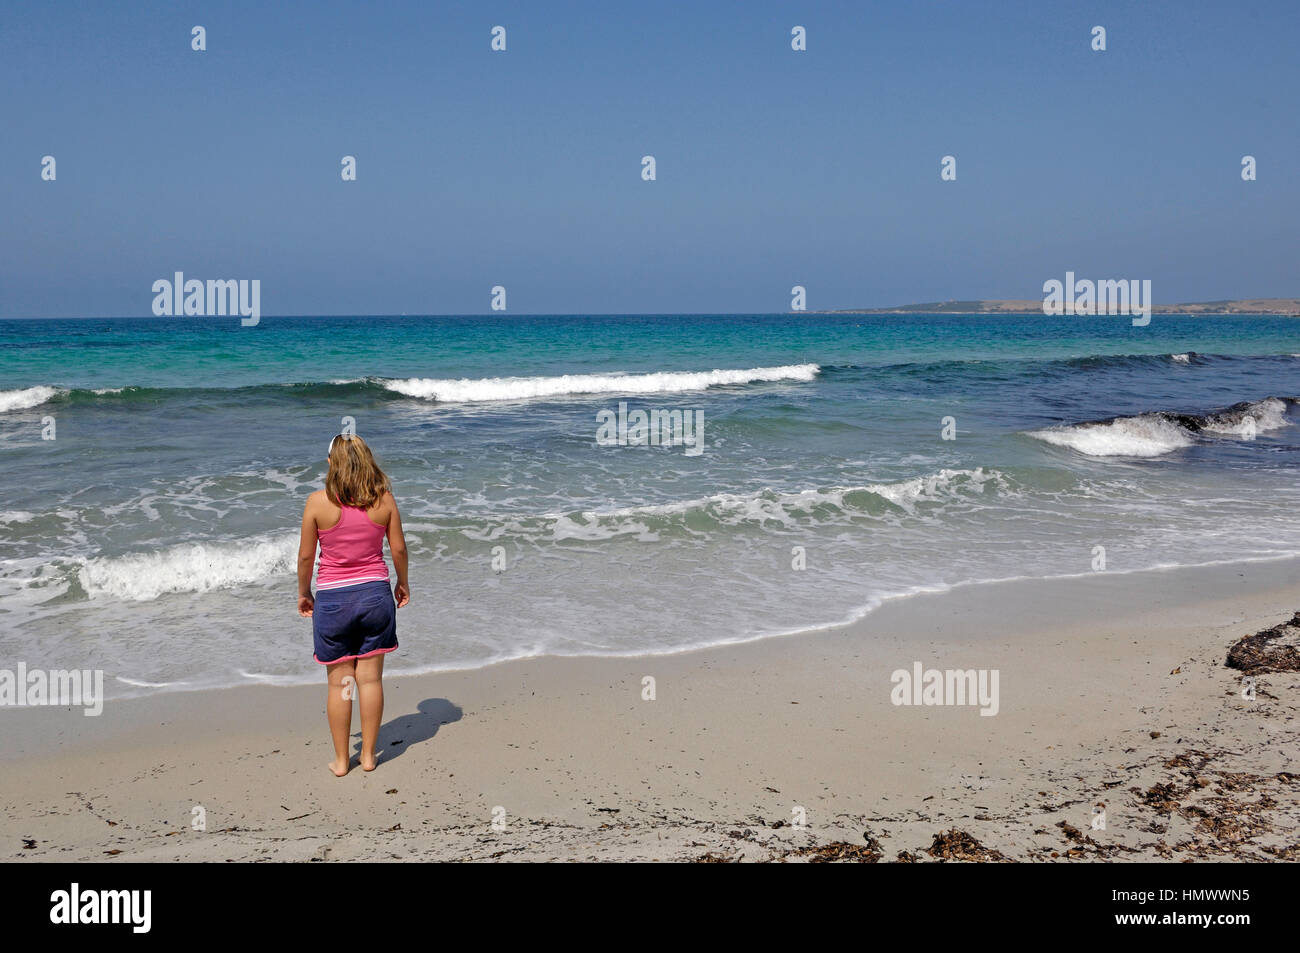 A view on the S'arena Scoada beach, Oristano district, Sardinia, Italy - Stock Image